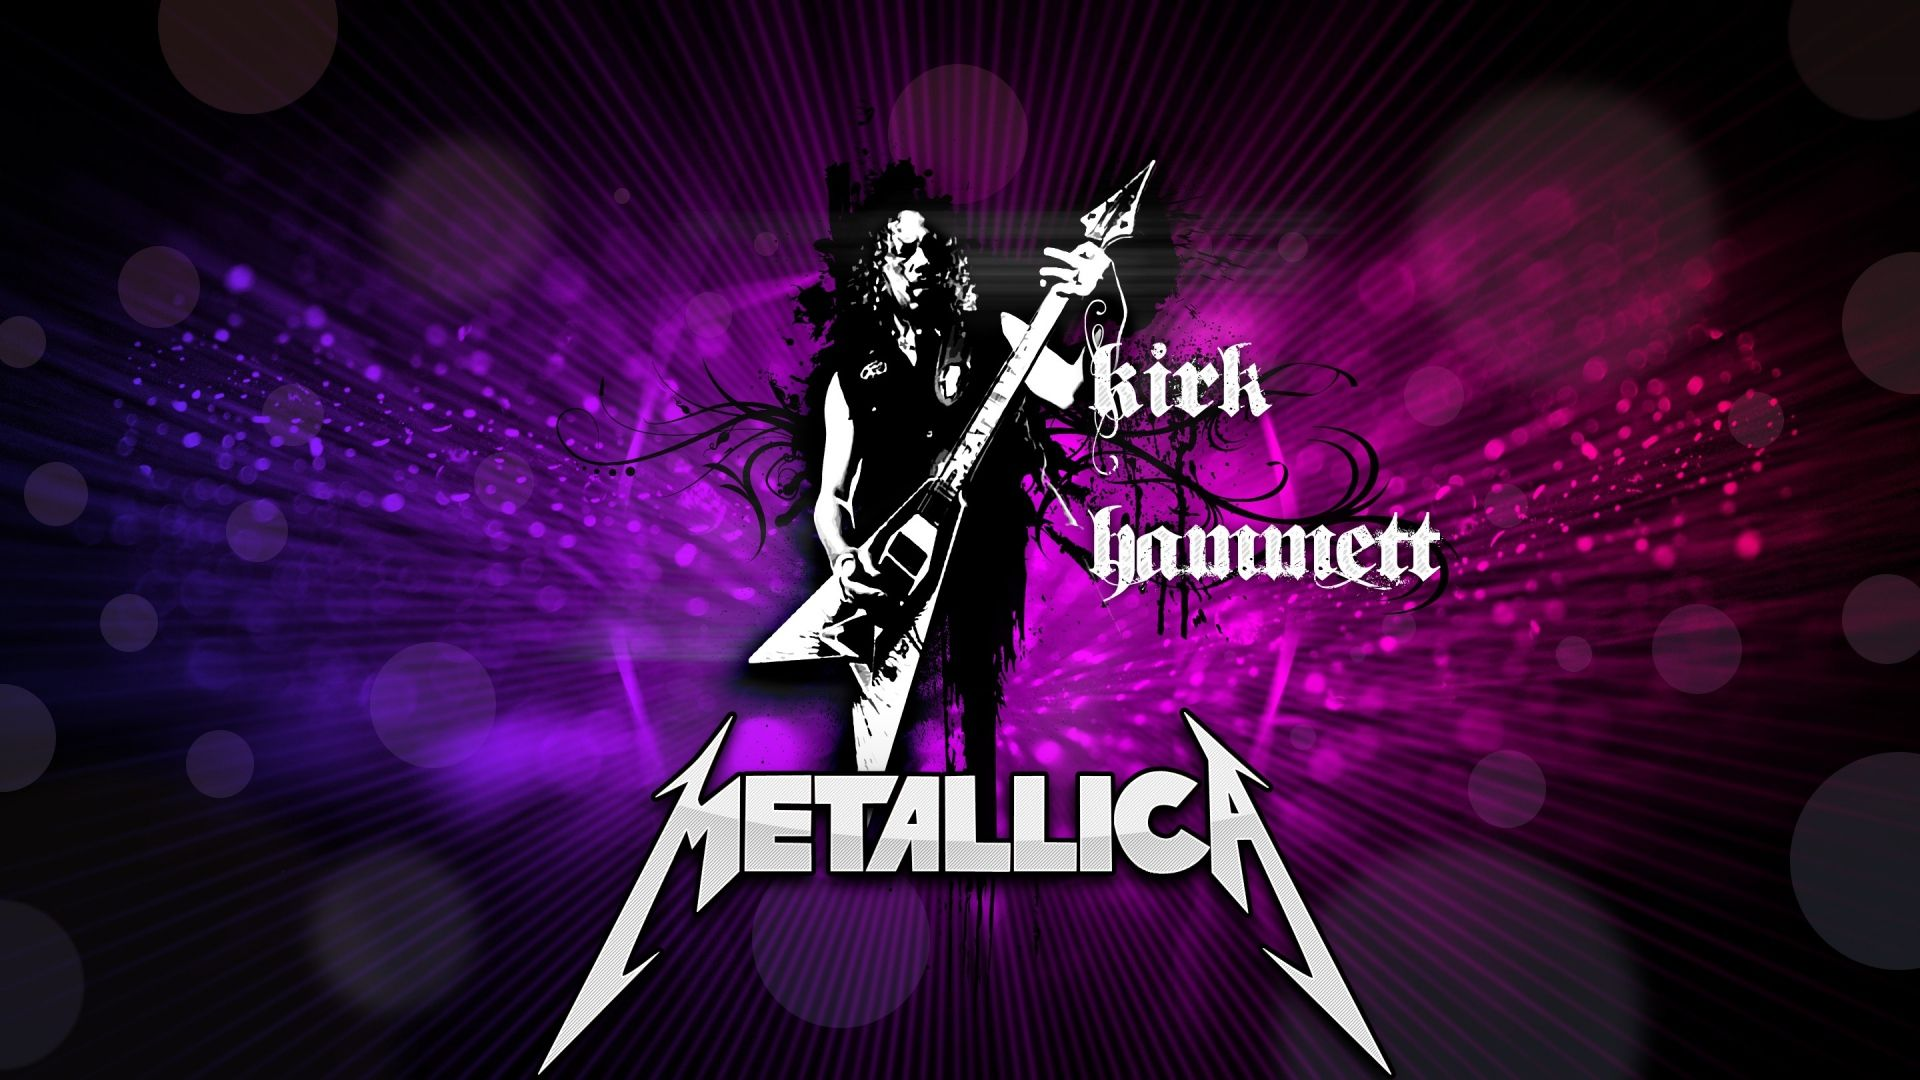 metallica hd background wallpapers and backgrounds